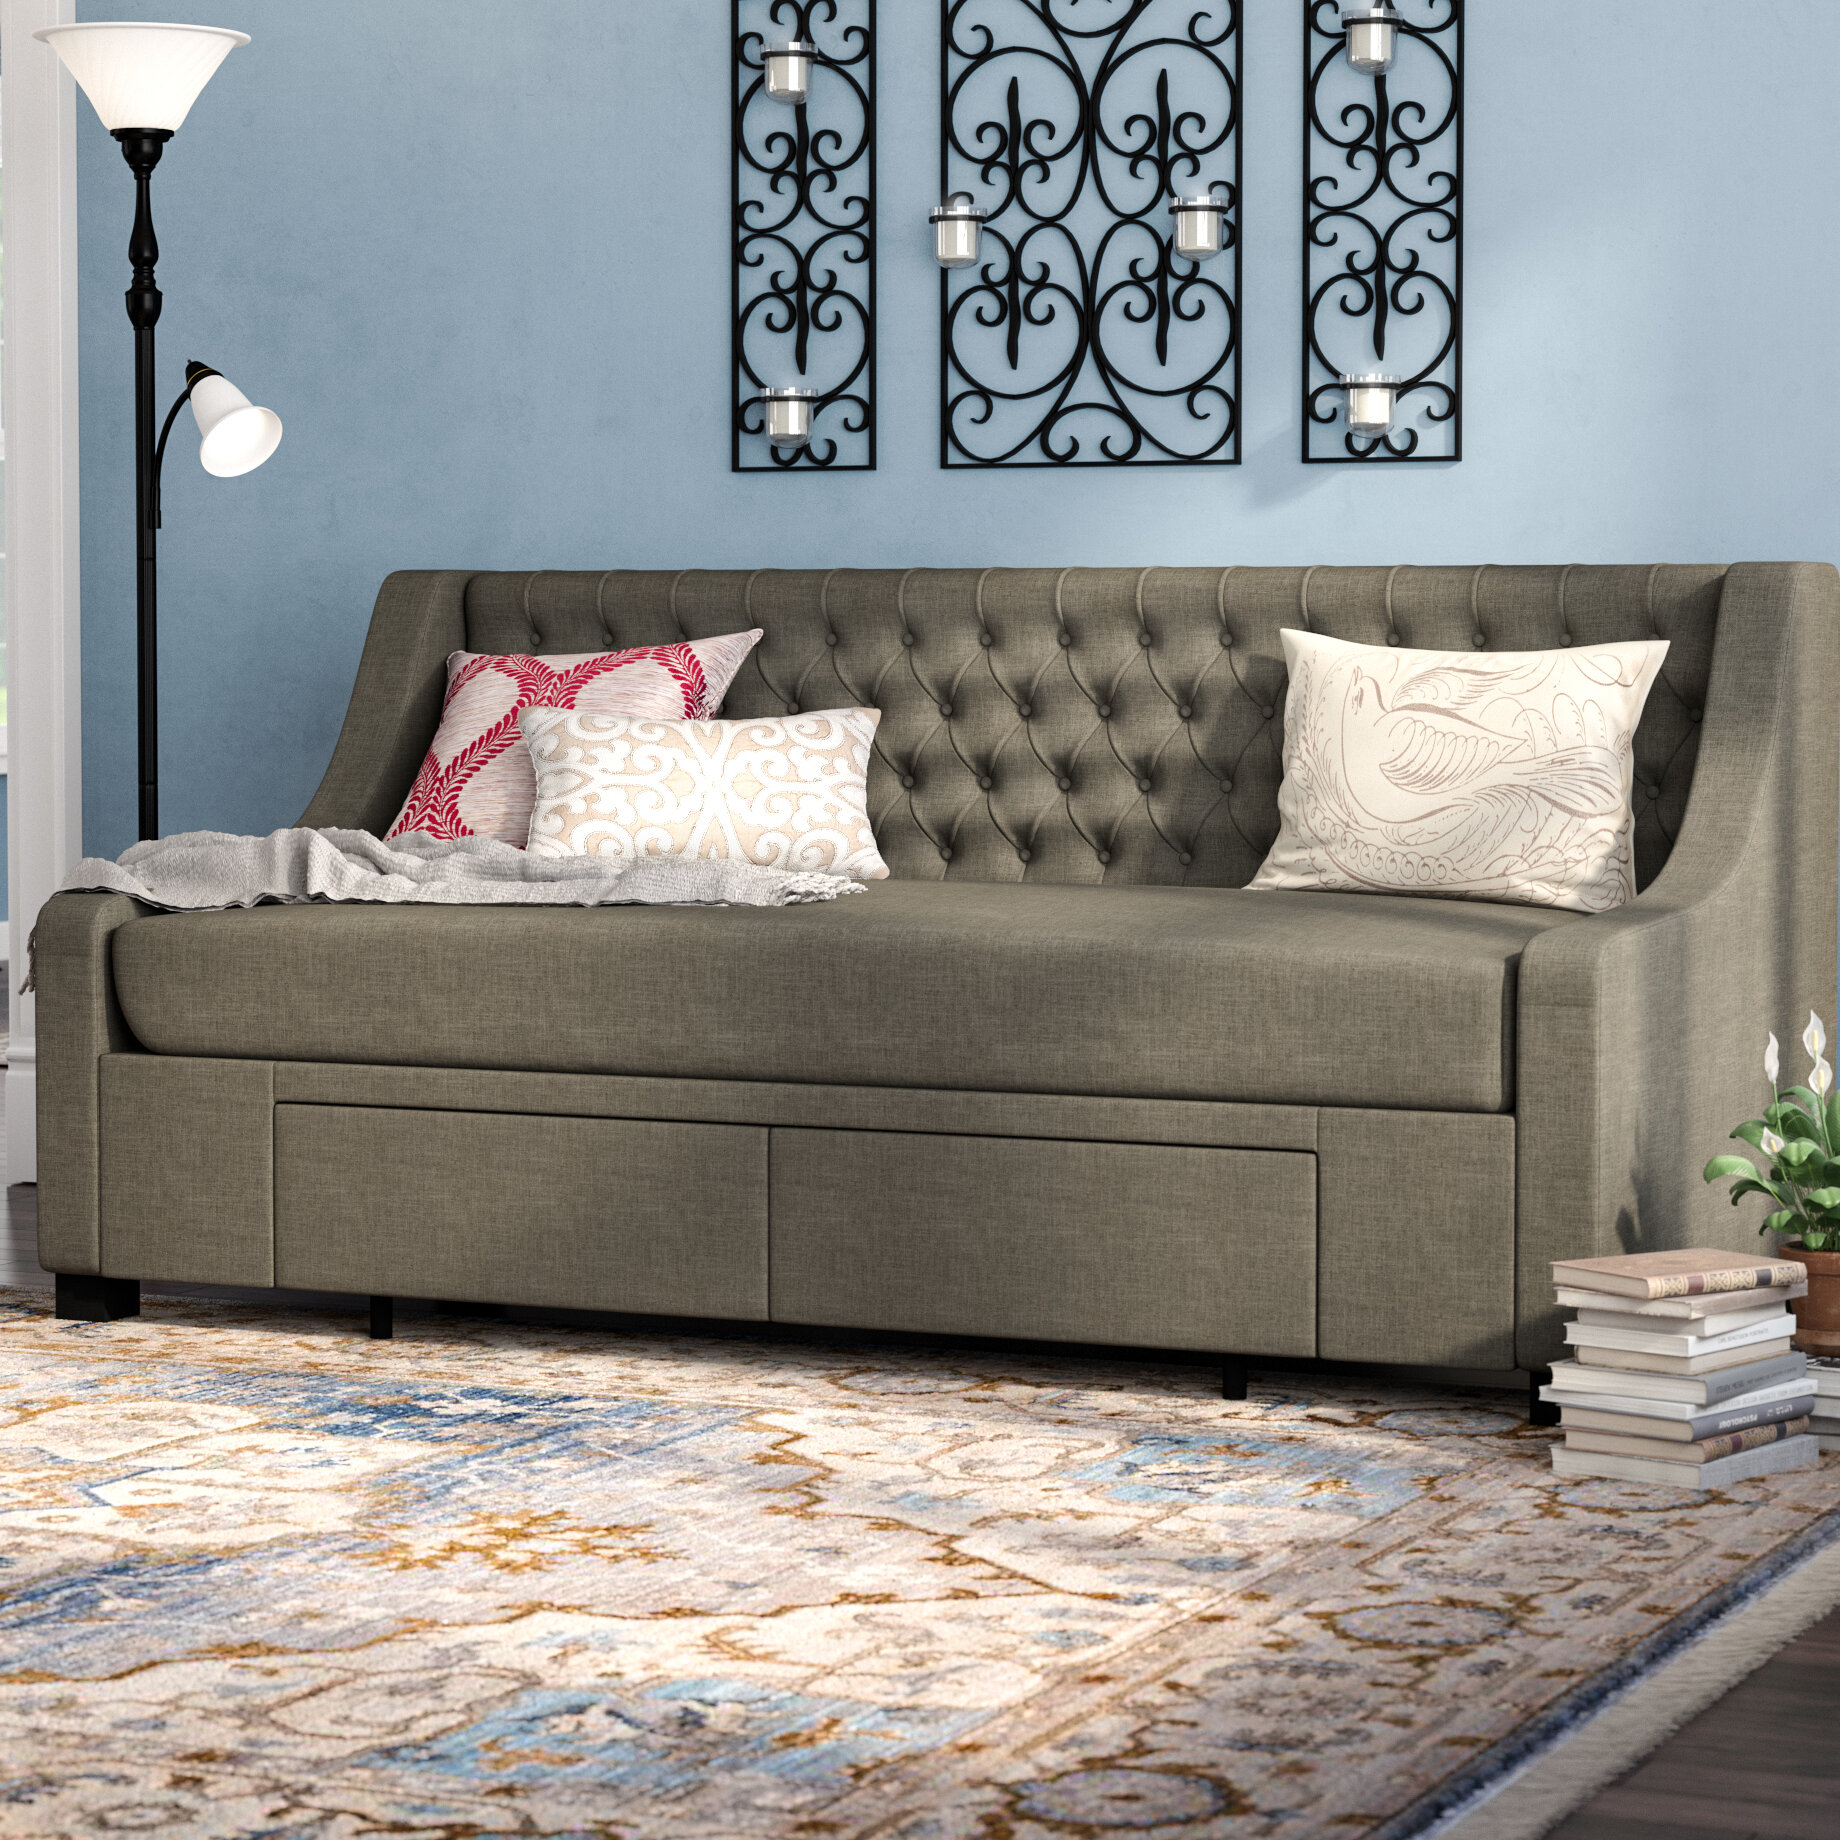 Darby Home Co Aron Twin Upholstery Storage Daybed U0026 Reviews   Wayfair